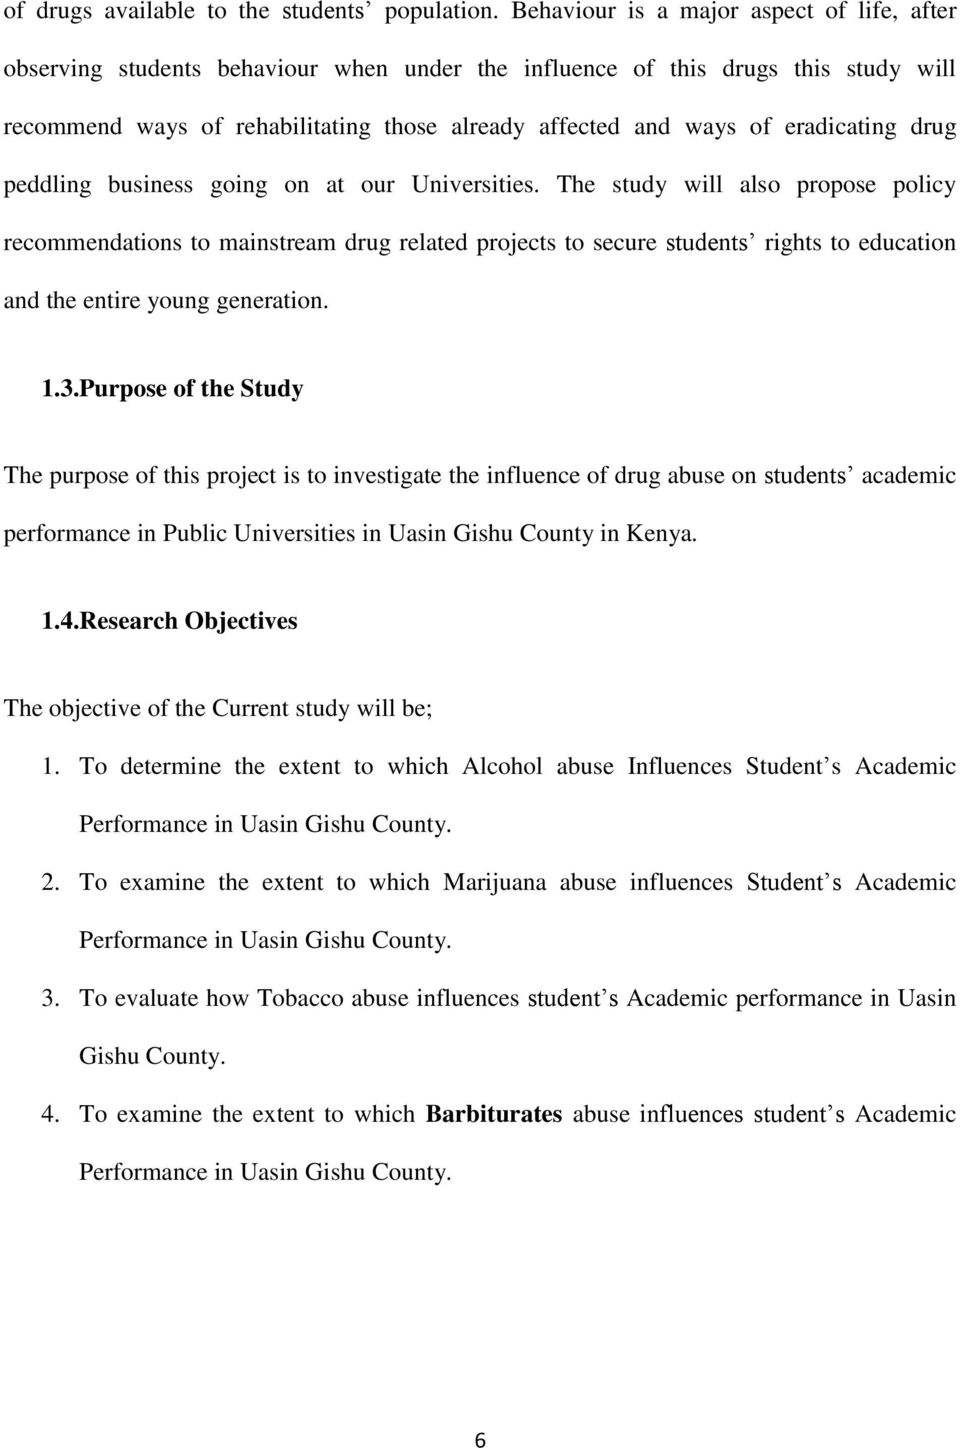 influence of drug abuse on students academic performance in public eradicating drug peddling business going on at our universities